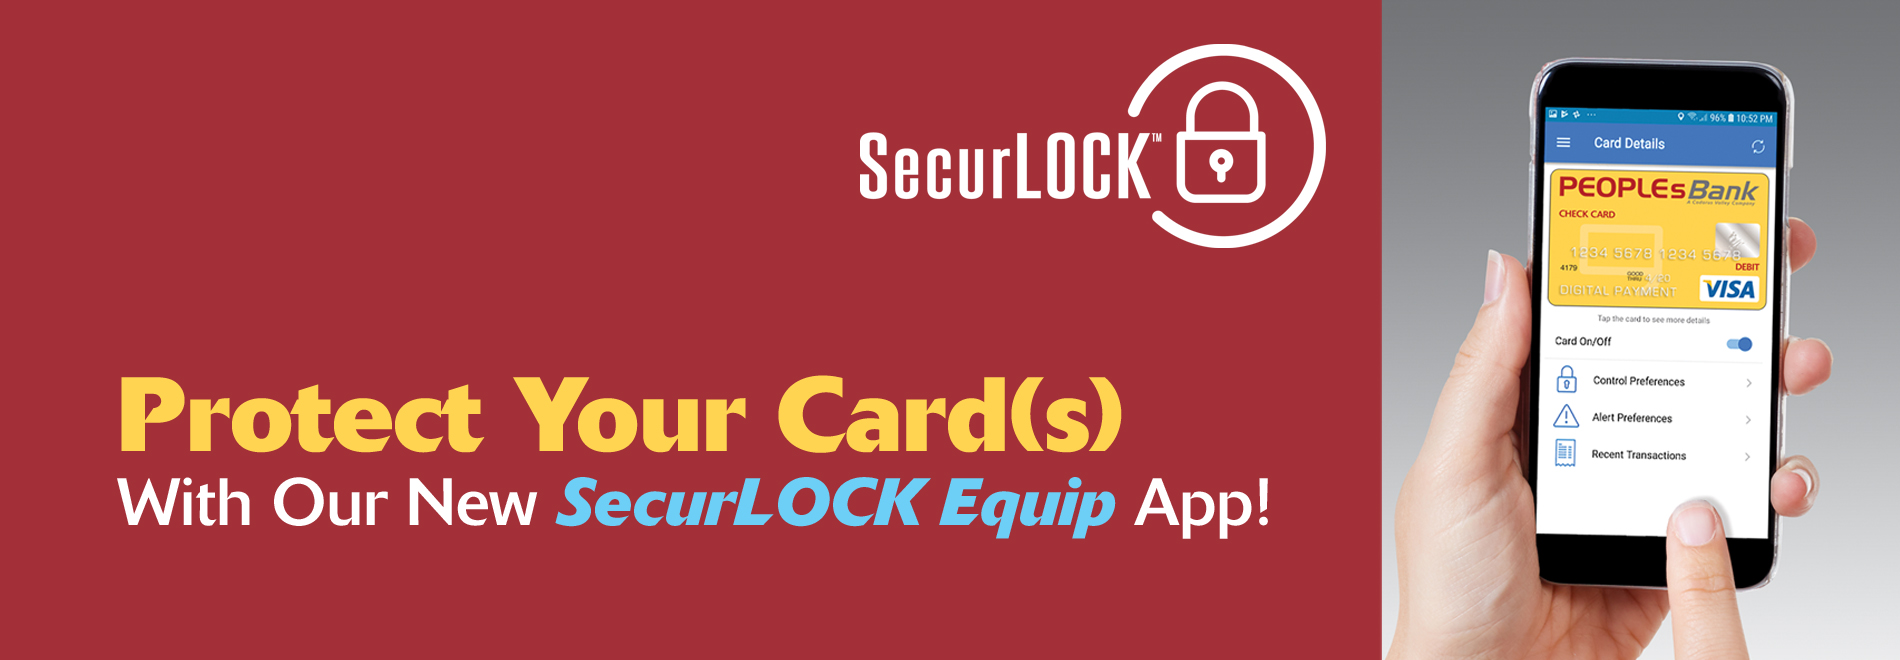 Protect Your Cards SecurLock Equip